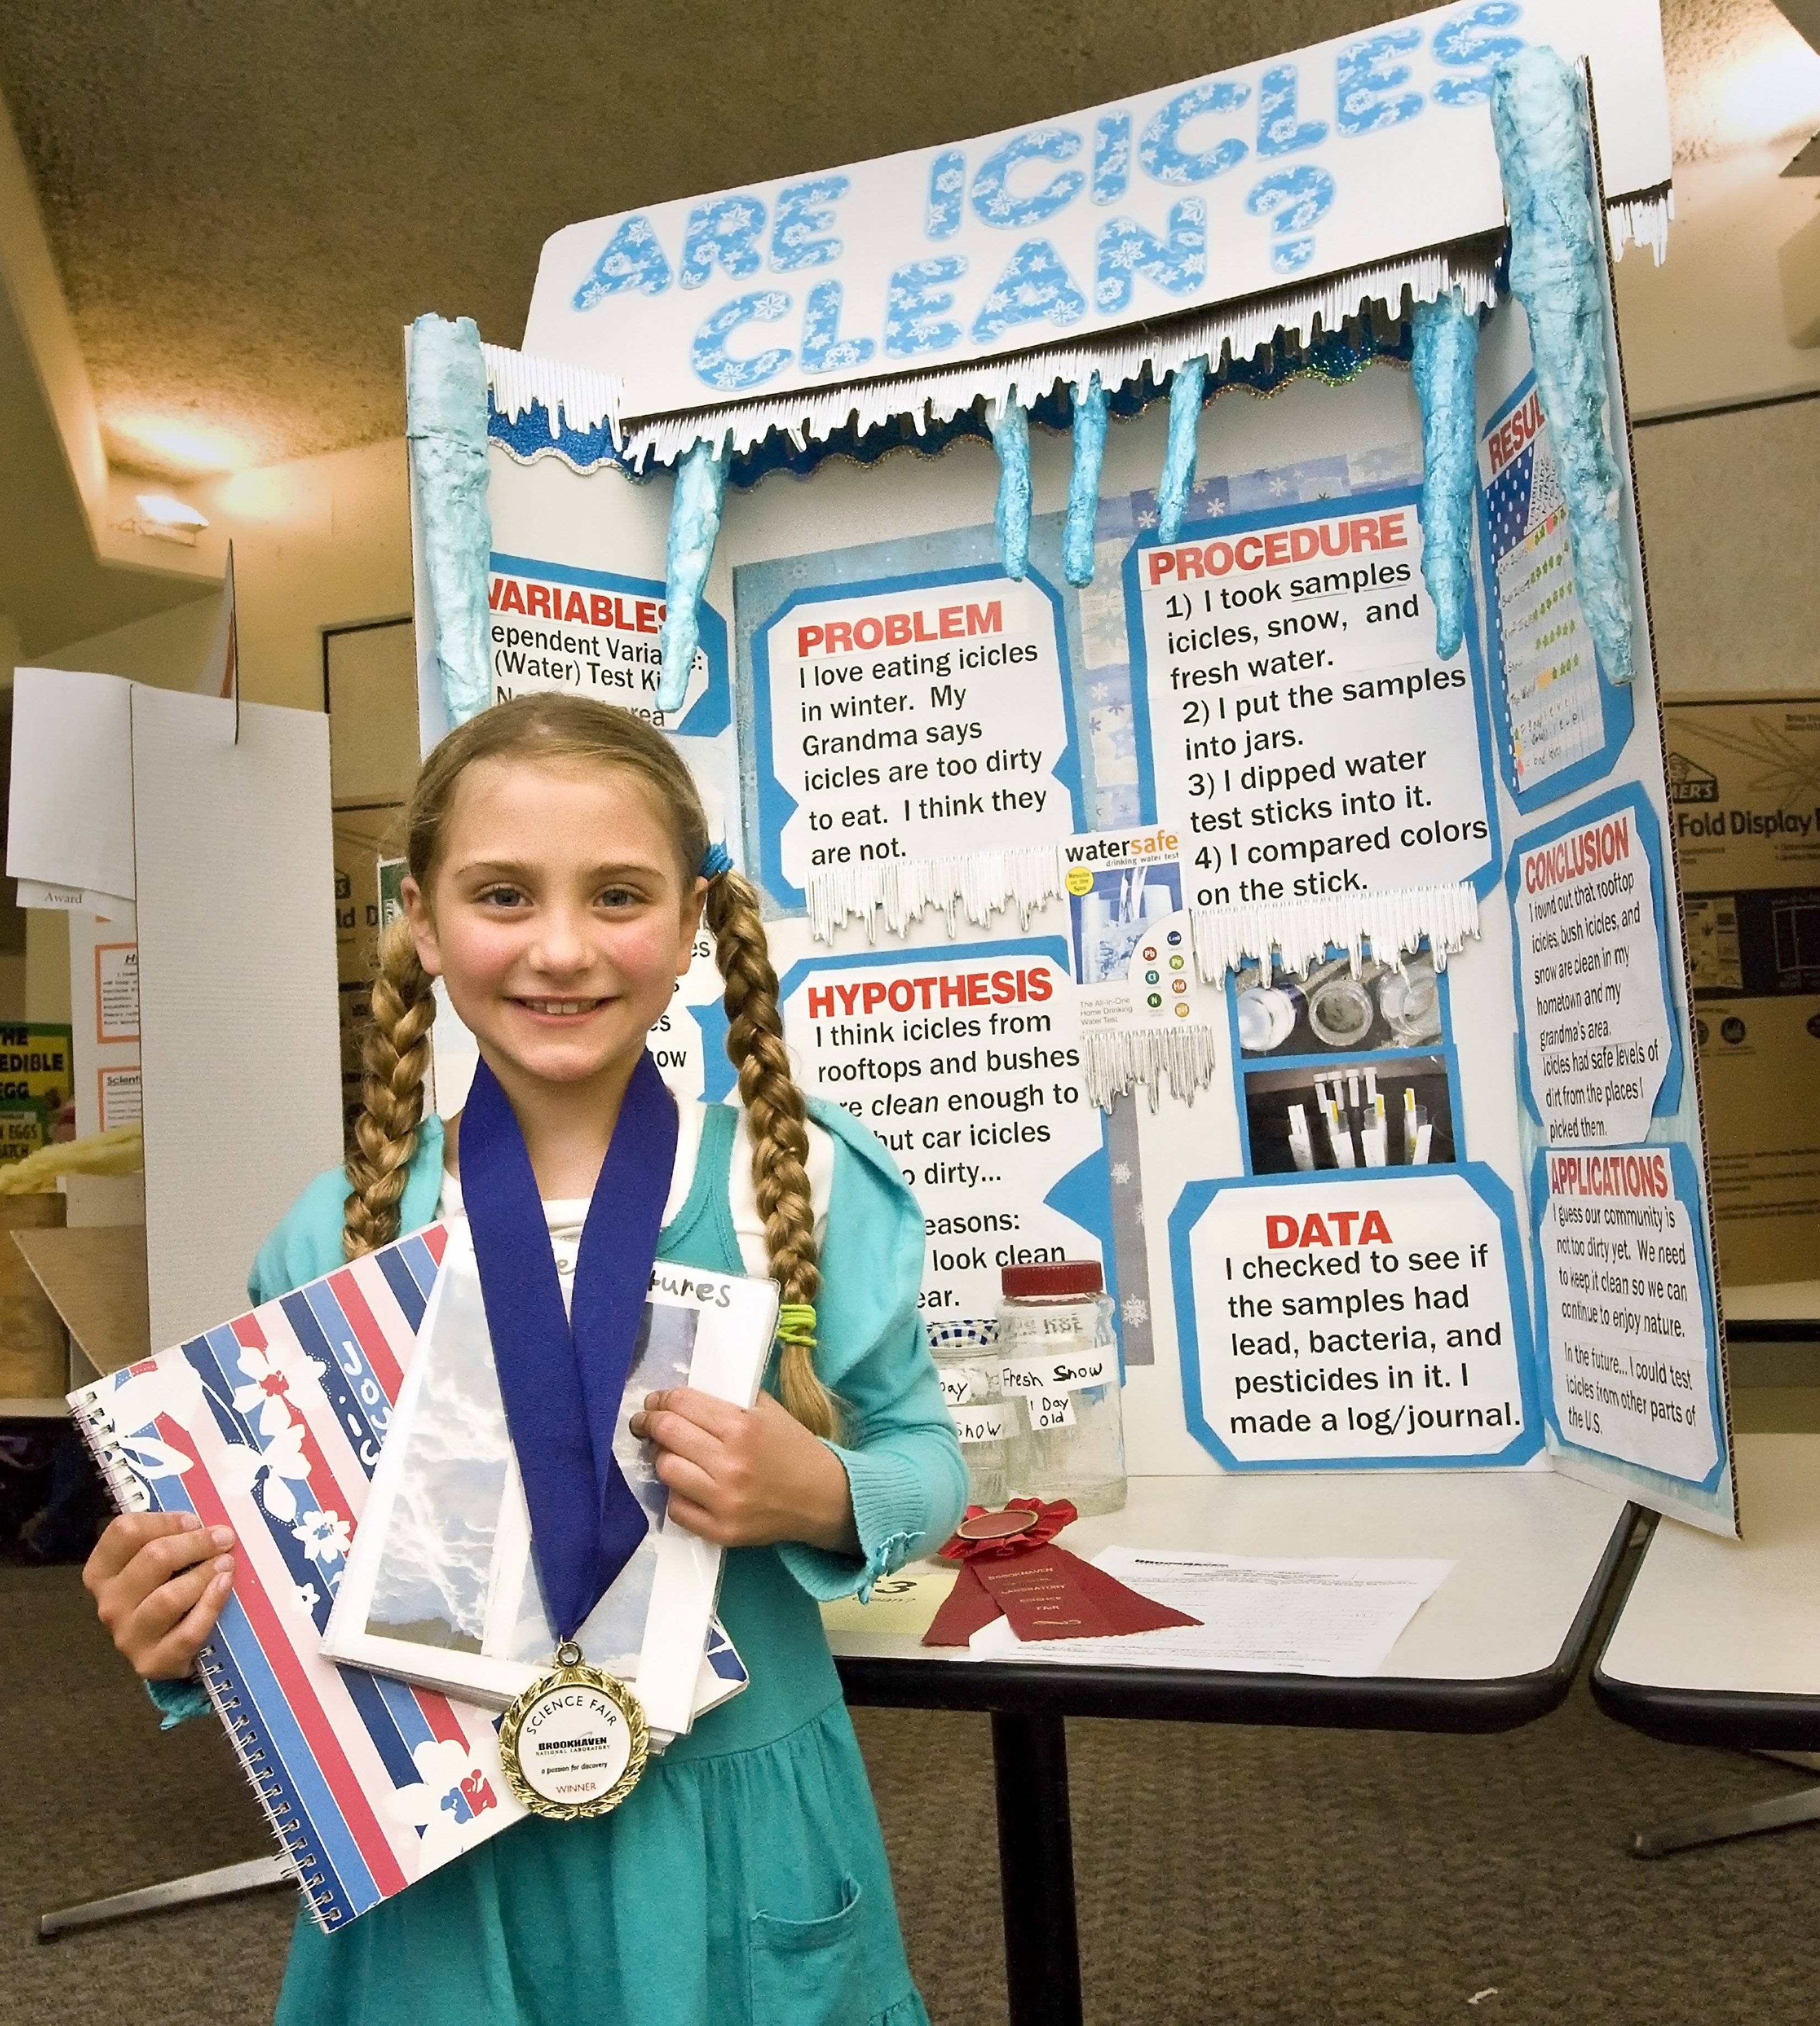 10 Lovely Science Fair Ideas 6Th Grade from ant control to wind energy winning projects at brookhaven 52 2020